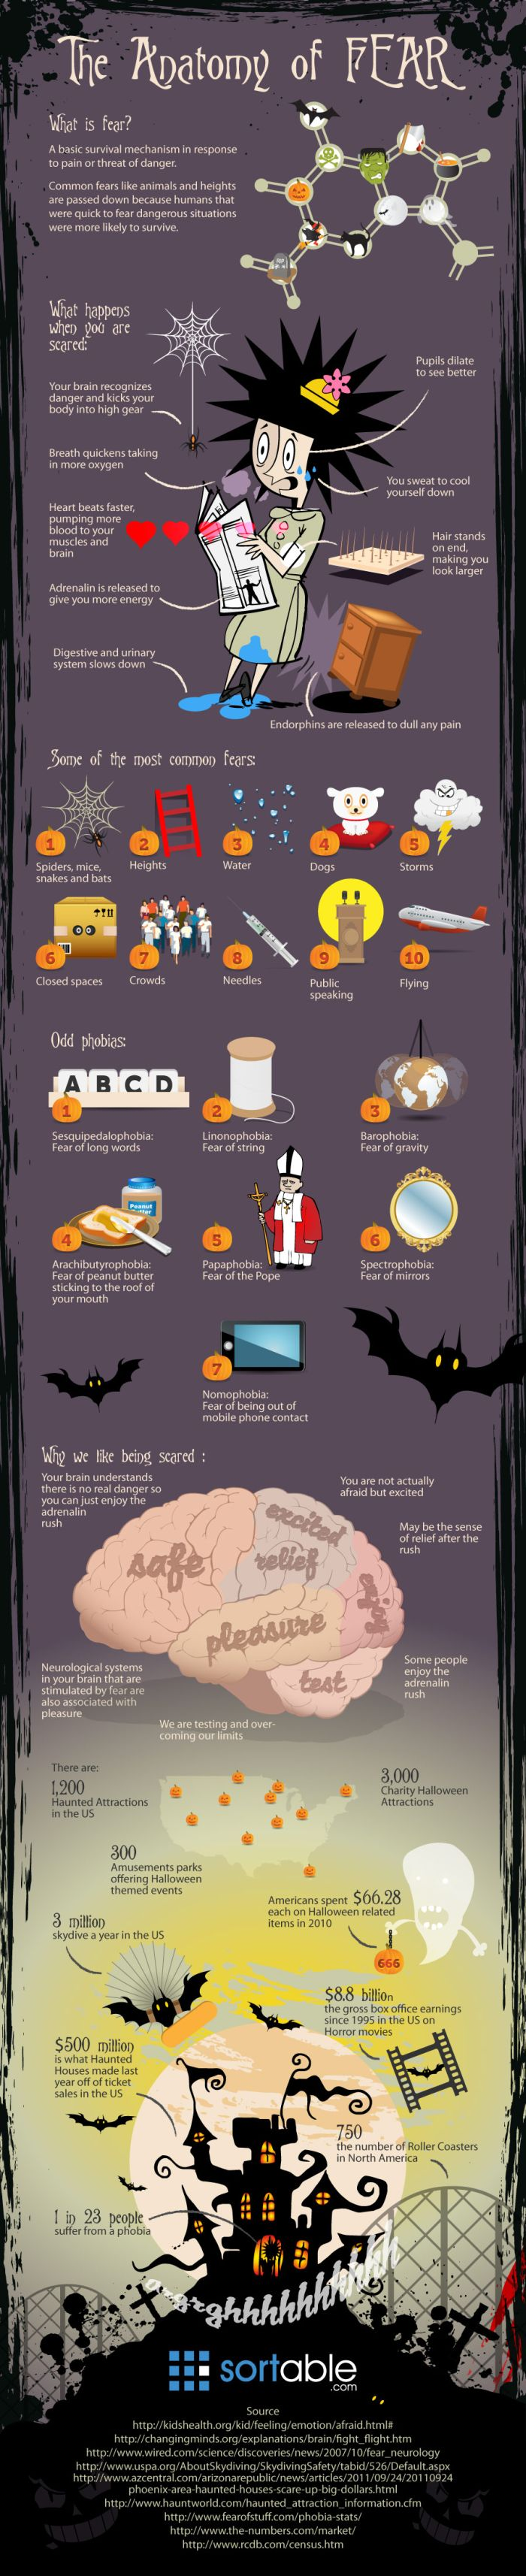 The Anatomy of Fear (infographic)